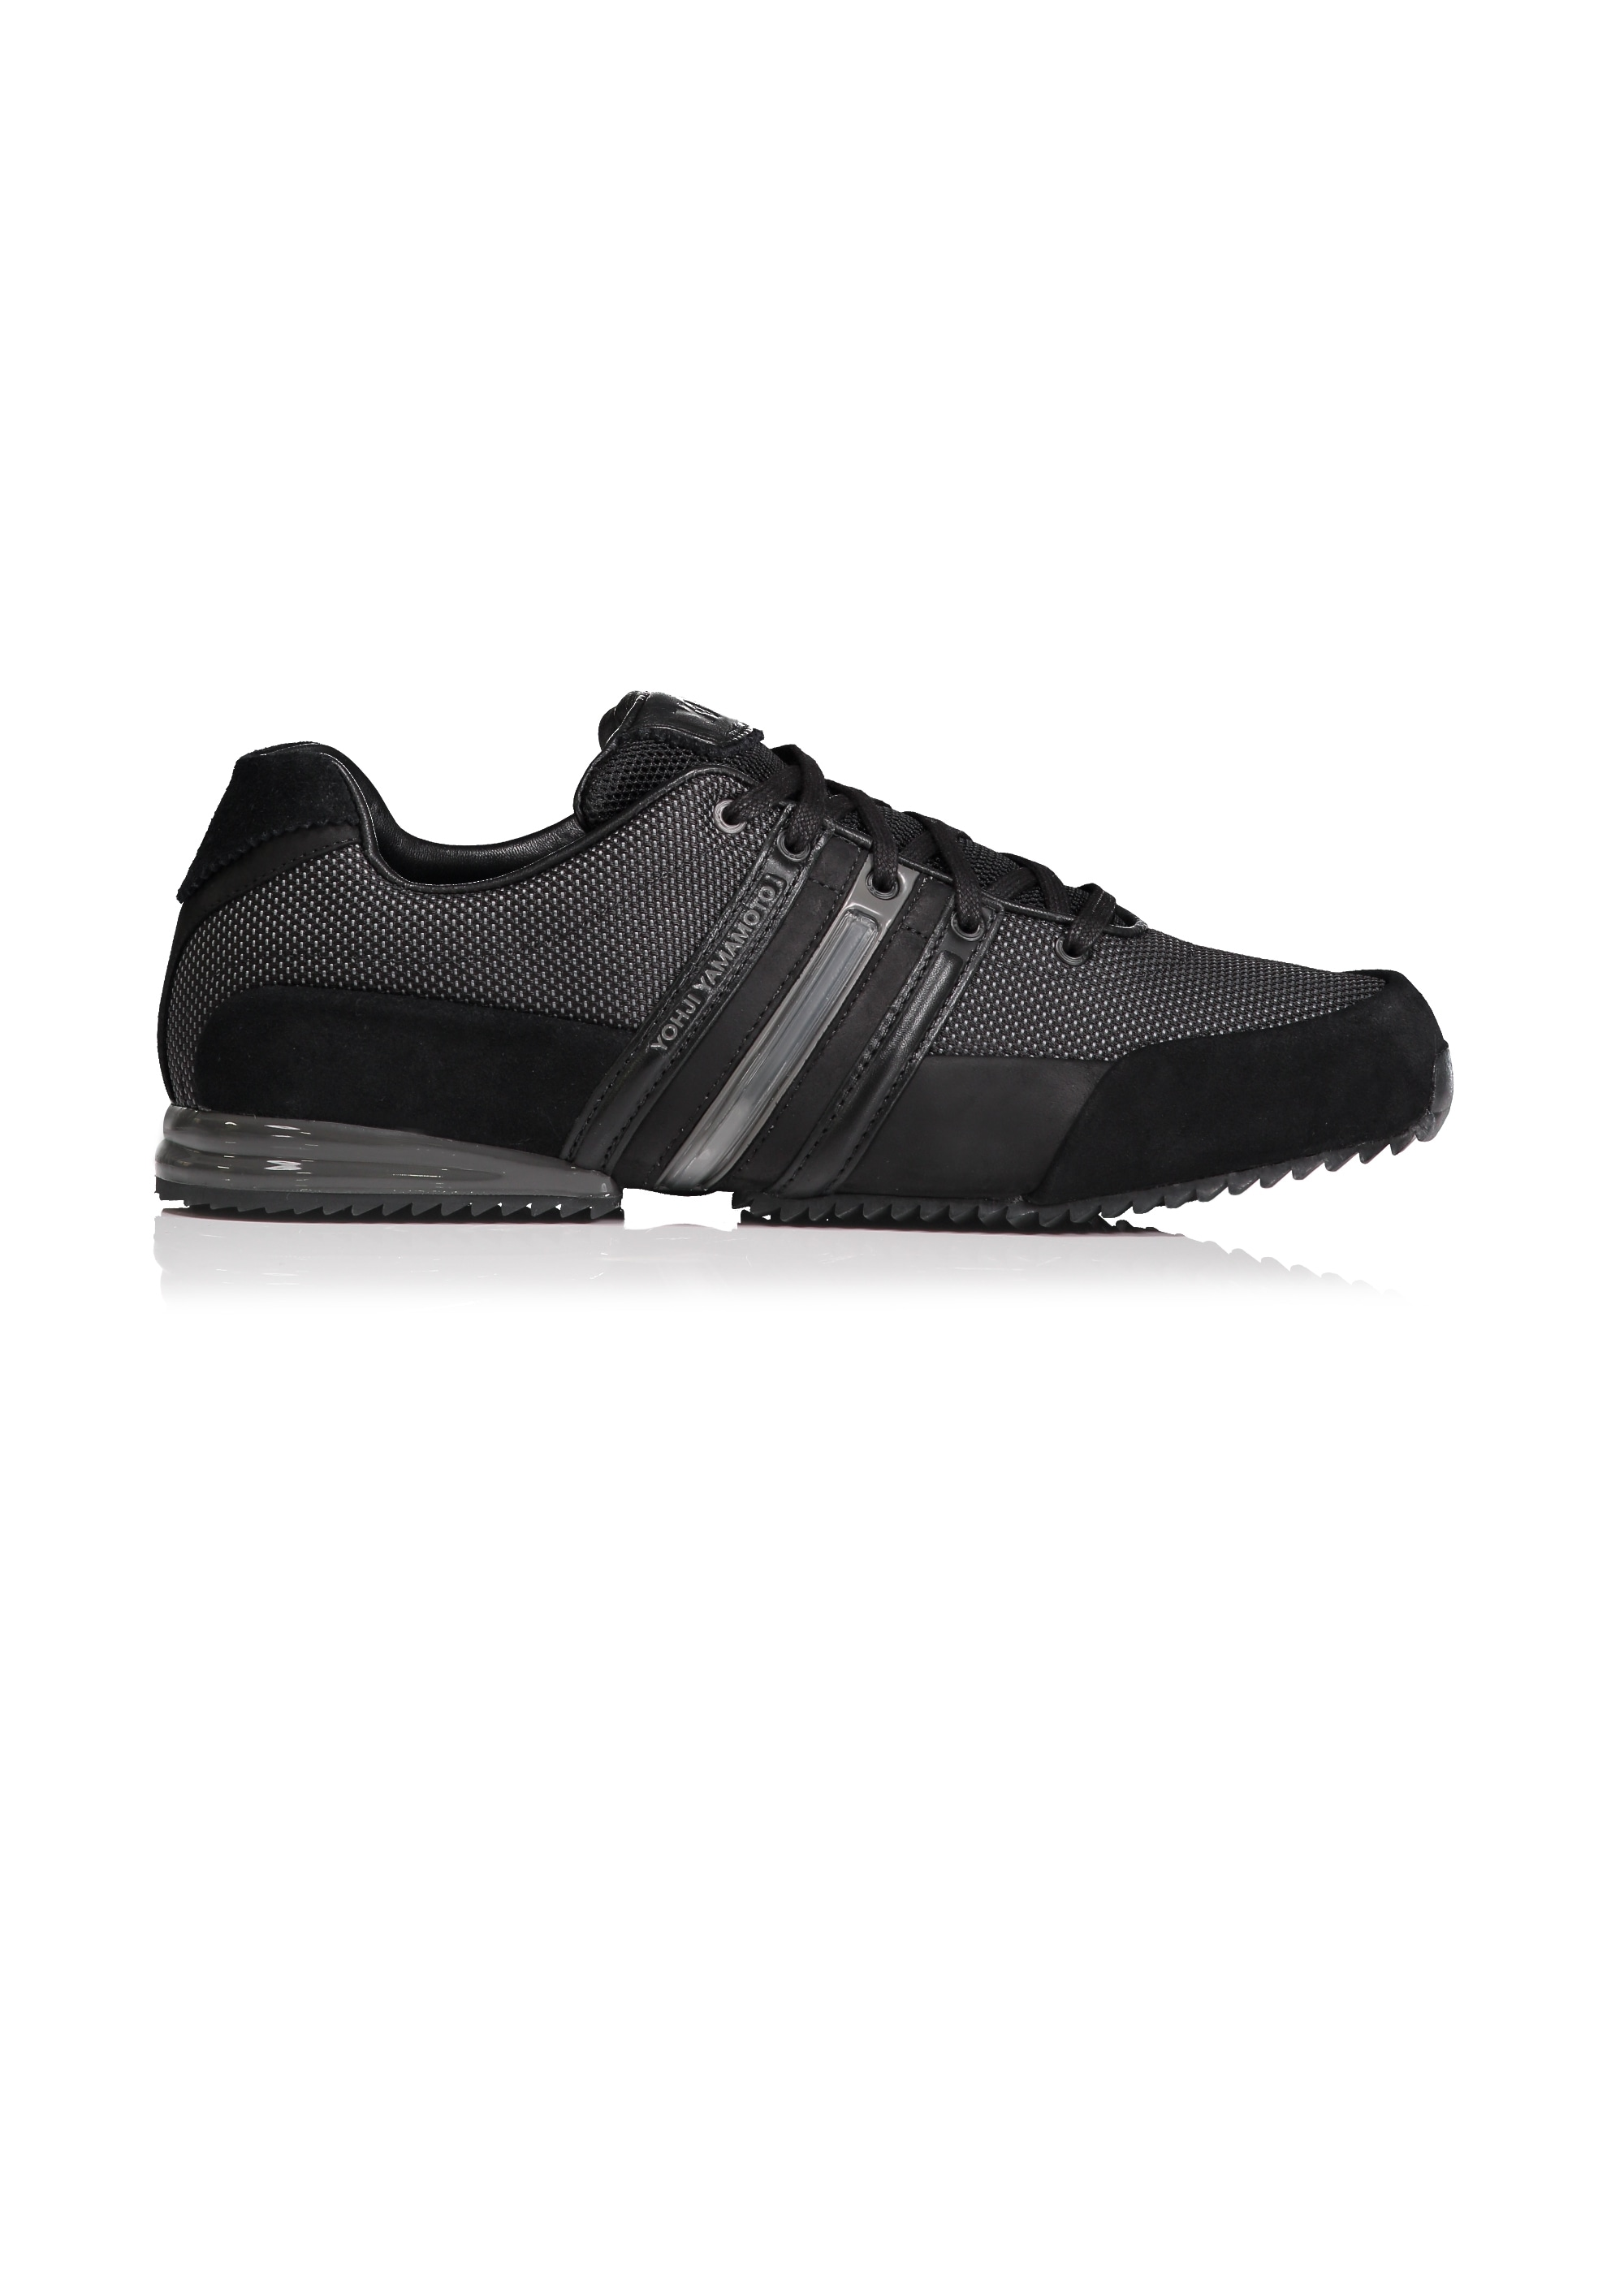 1e6e7606623cb ... Y3   Adidas - Yohji Yamamoto Sprint Trainers - Core Black. Tap image to  zoom. Sprint Trainers - Core Black. Sprint Trainers - Core Black